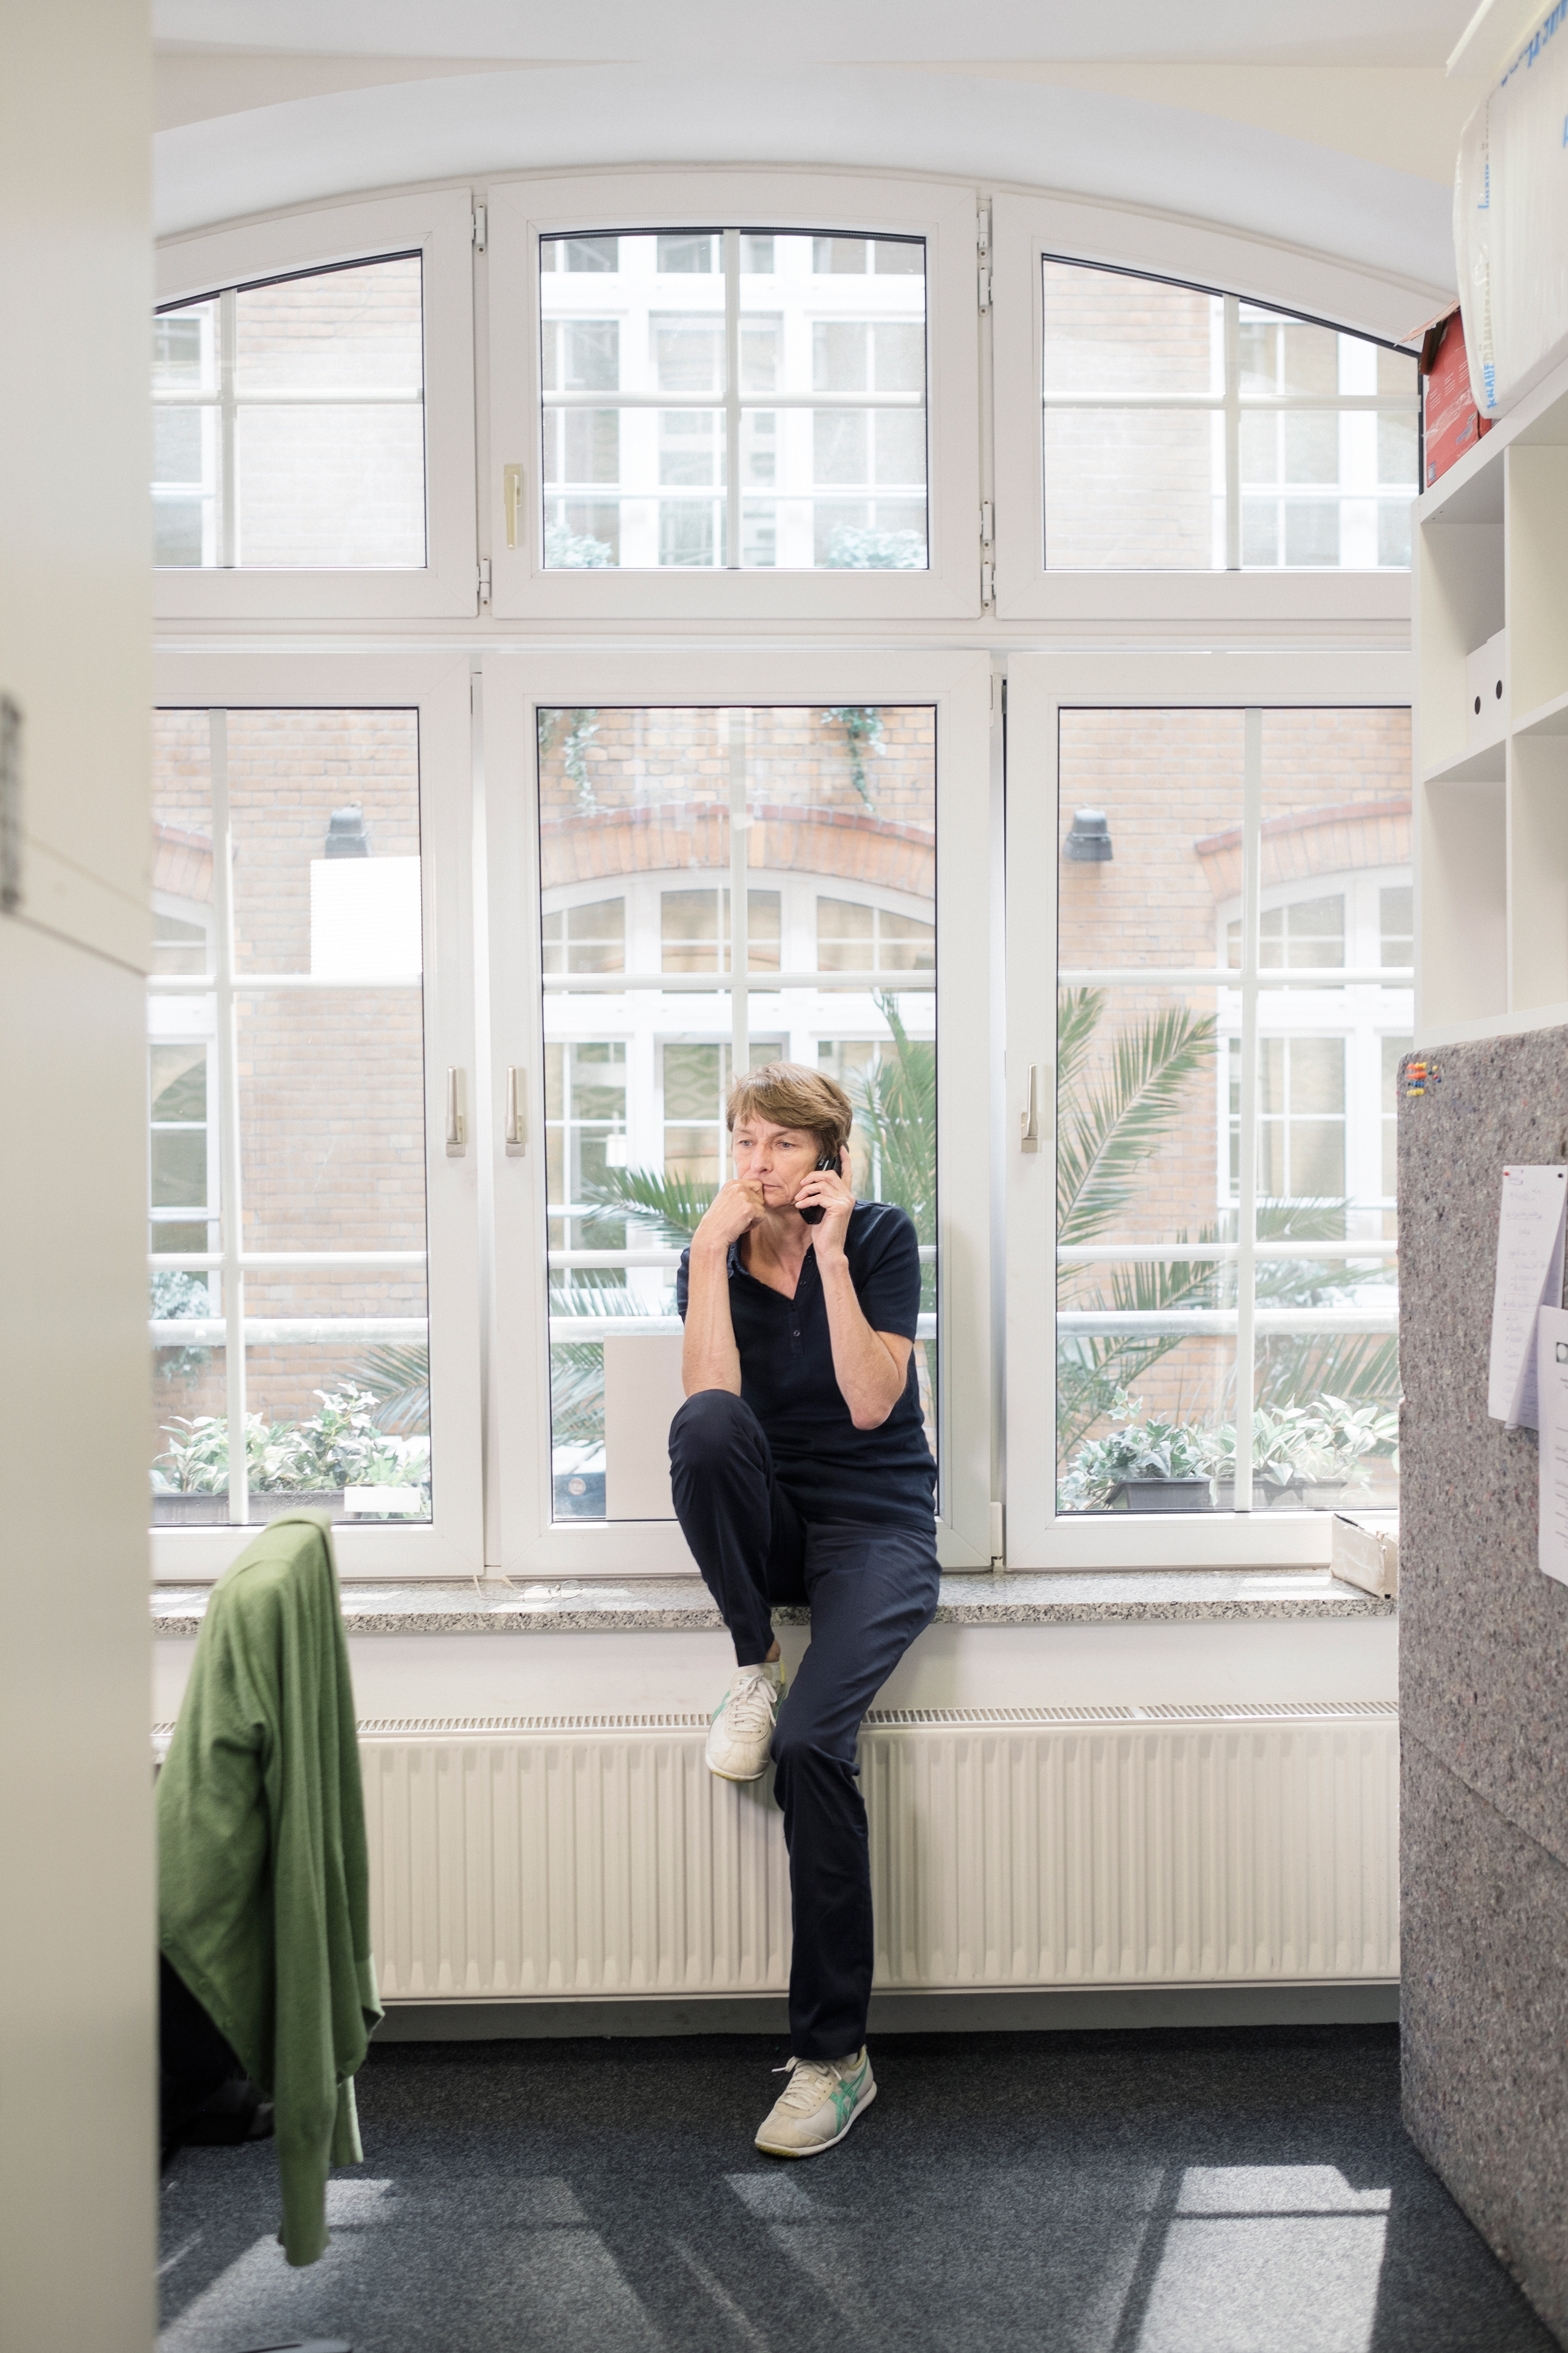 Jutta Kramm, head of the Correctiv factchecking team, works at the office in Berlin on Aug. 10.